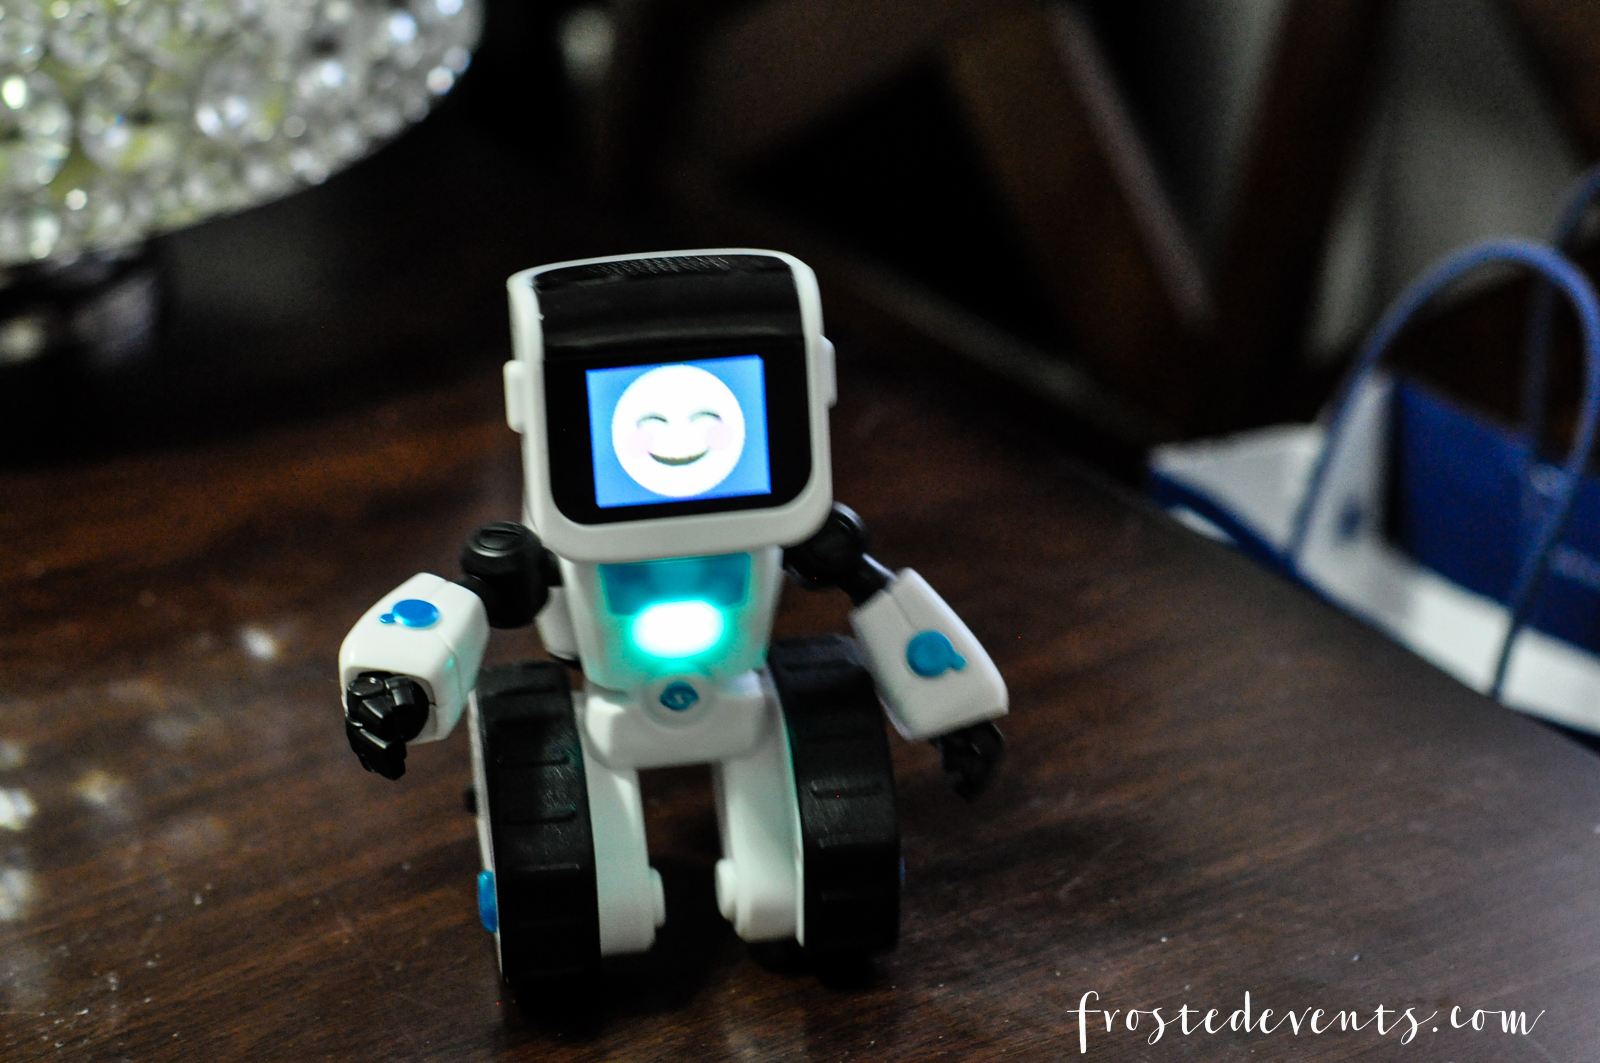 Cool Kid's Toys Power Imagination and Top Christmas Lists CHiP robot dog and COJI emoji robot review by Misty Nelson @frostedevents mom blogger